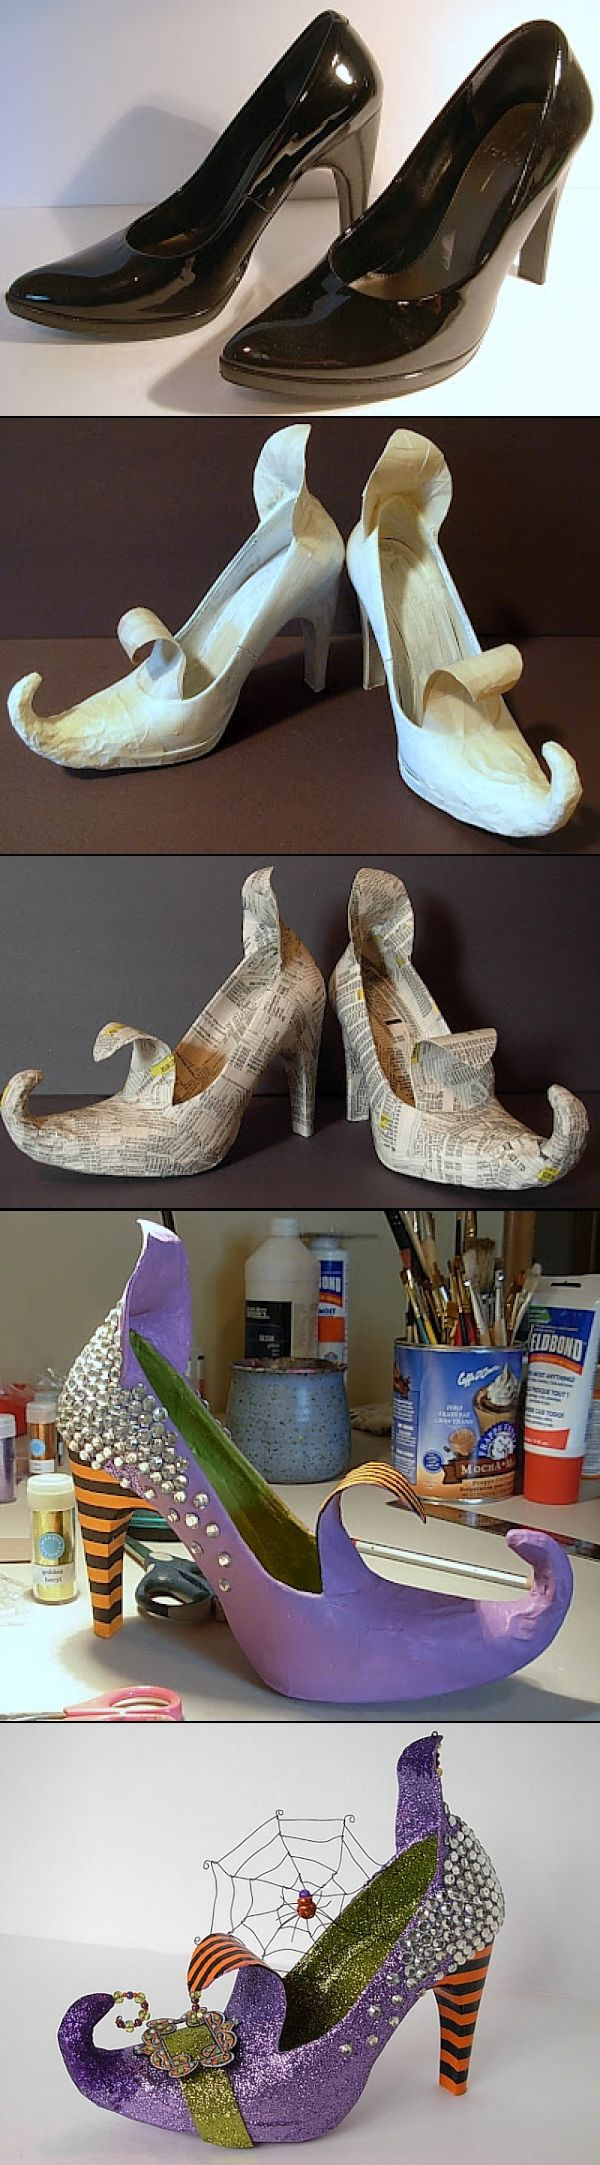 DIY witches shoes- certainly could scale down to kid size too (or could use same idea for elf shoes)